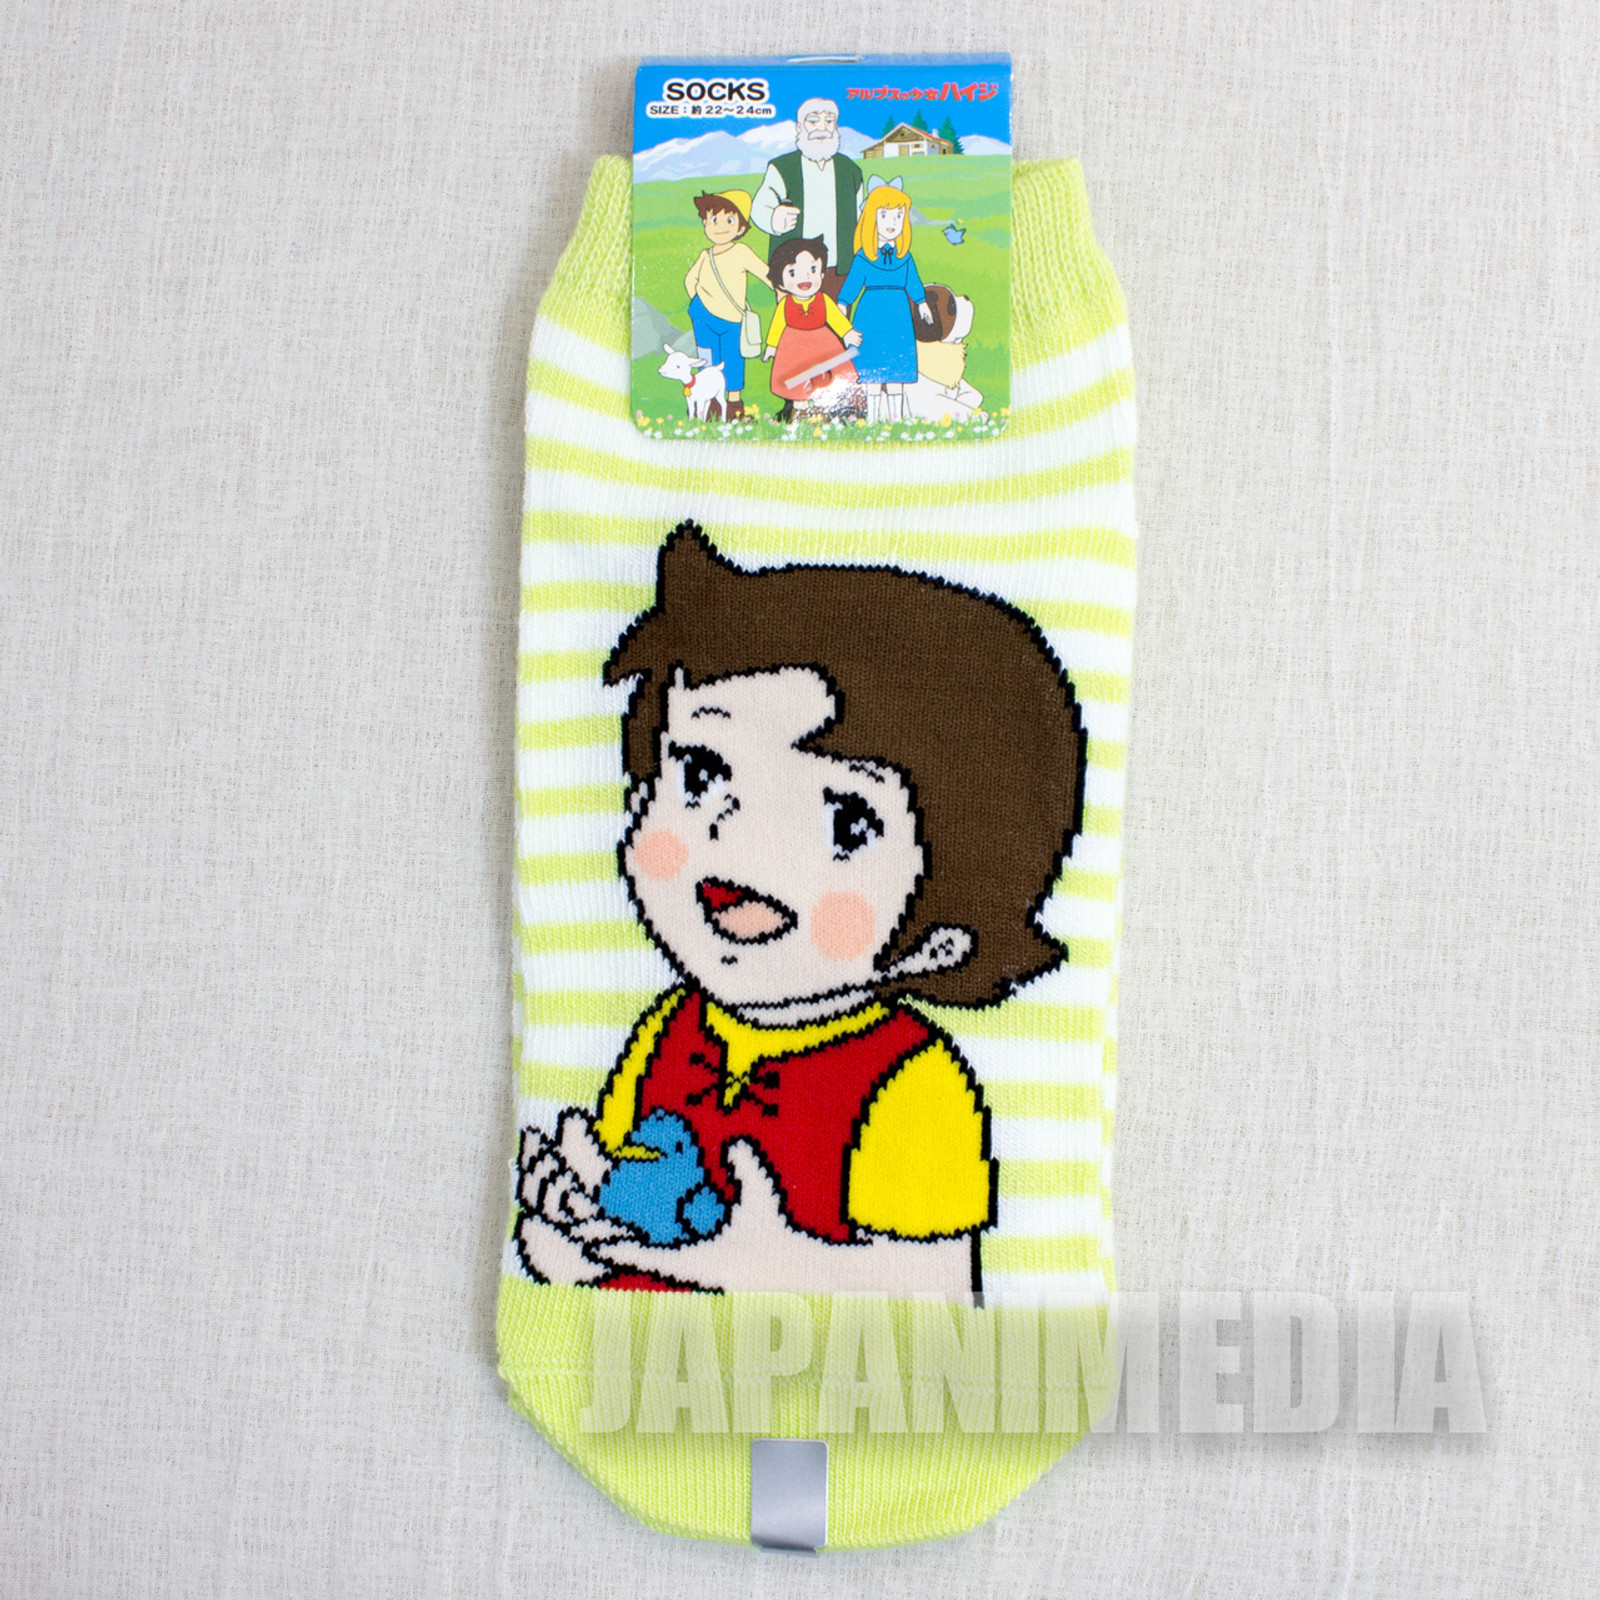 Heidi Girl of the Alps #1 a Pair of Socks Size 22-24cm JAPAN ANIME MANGA